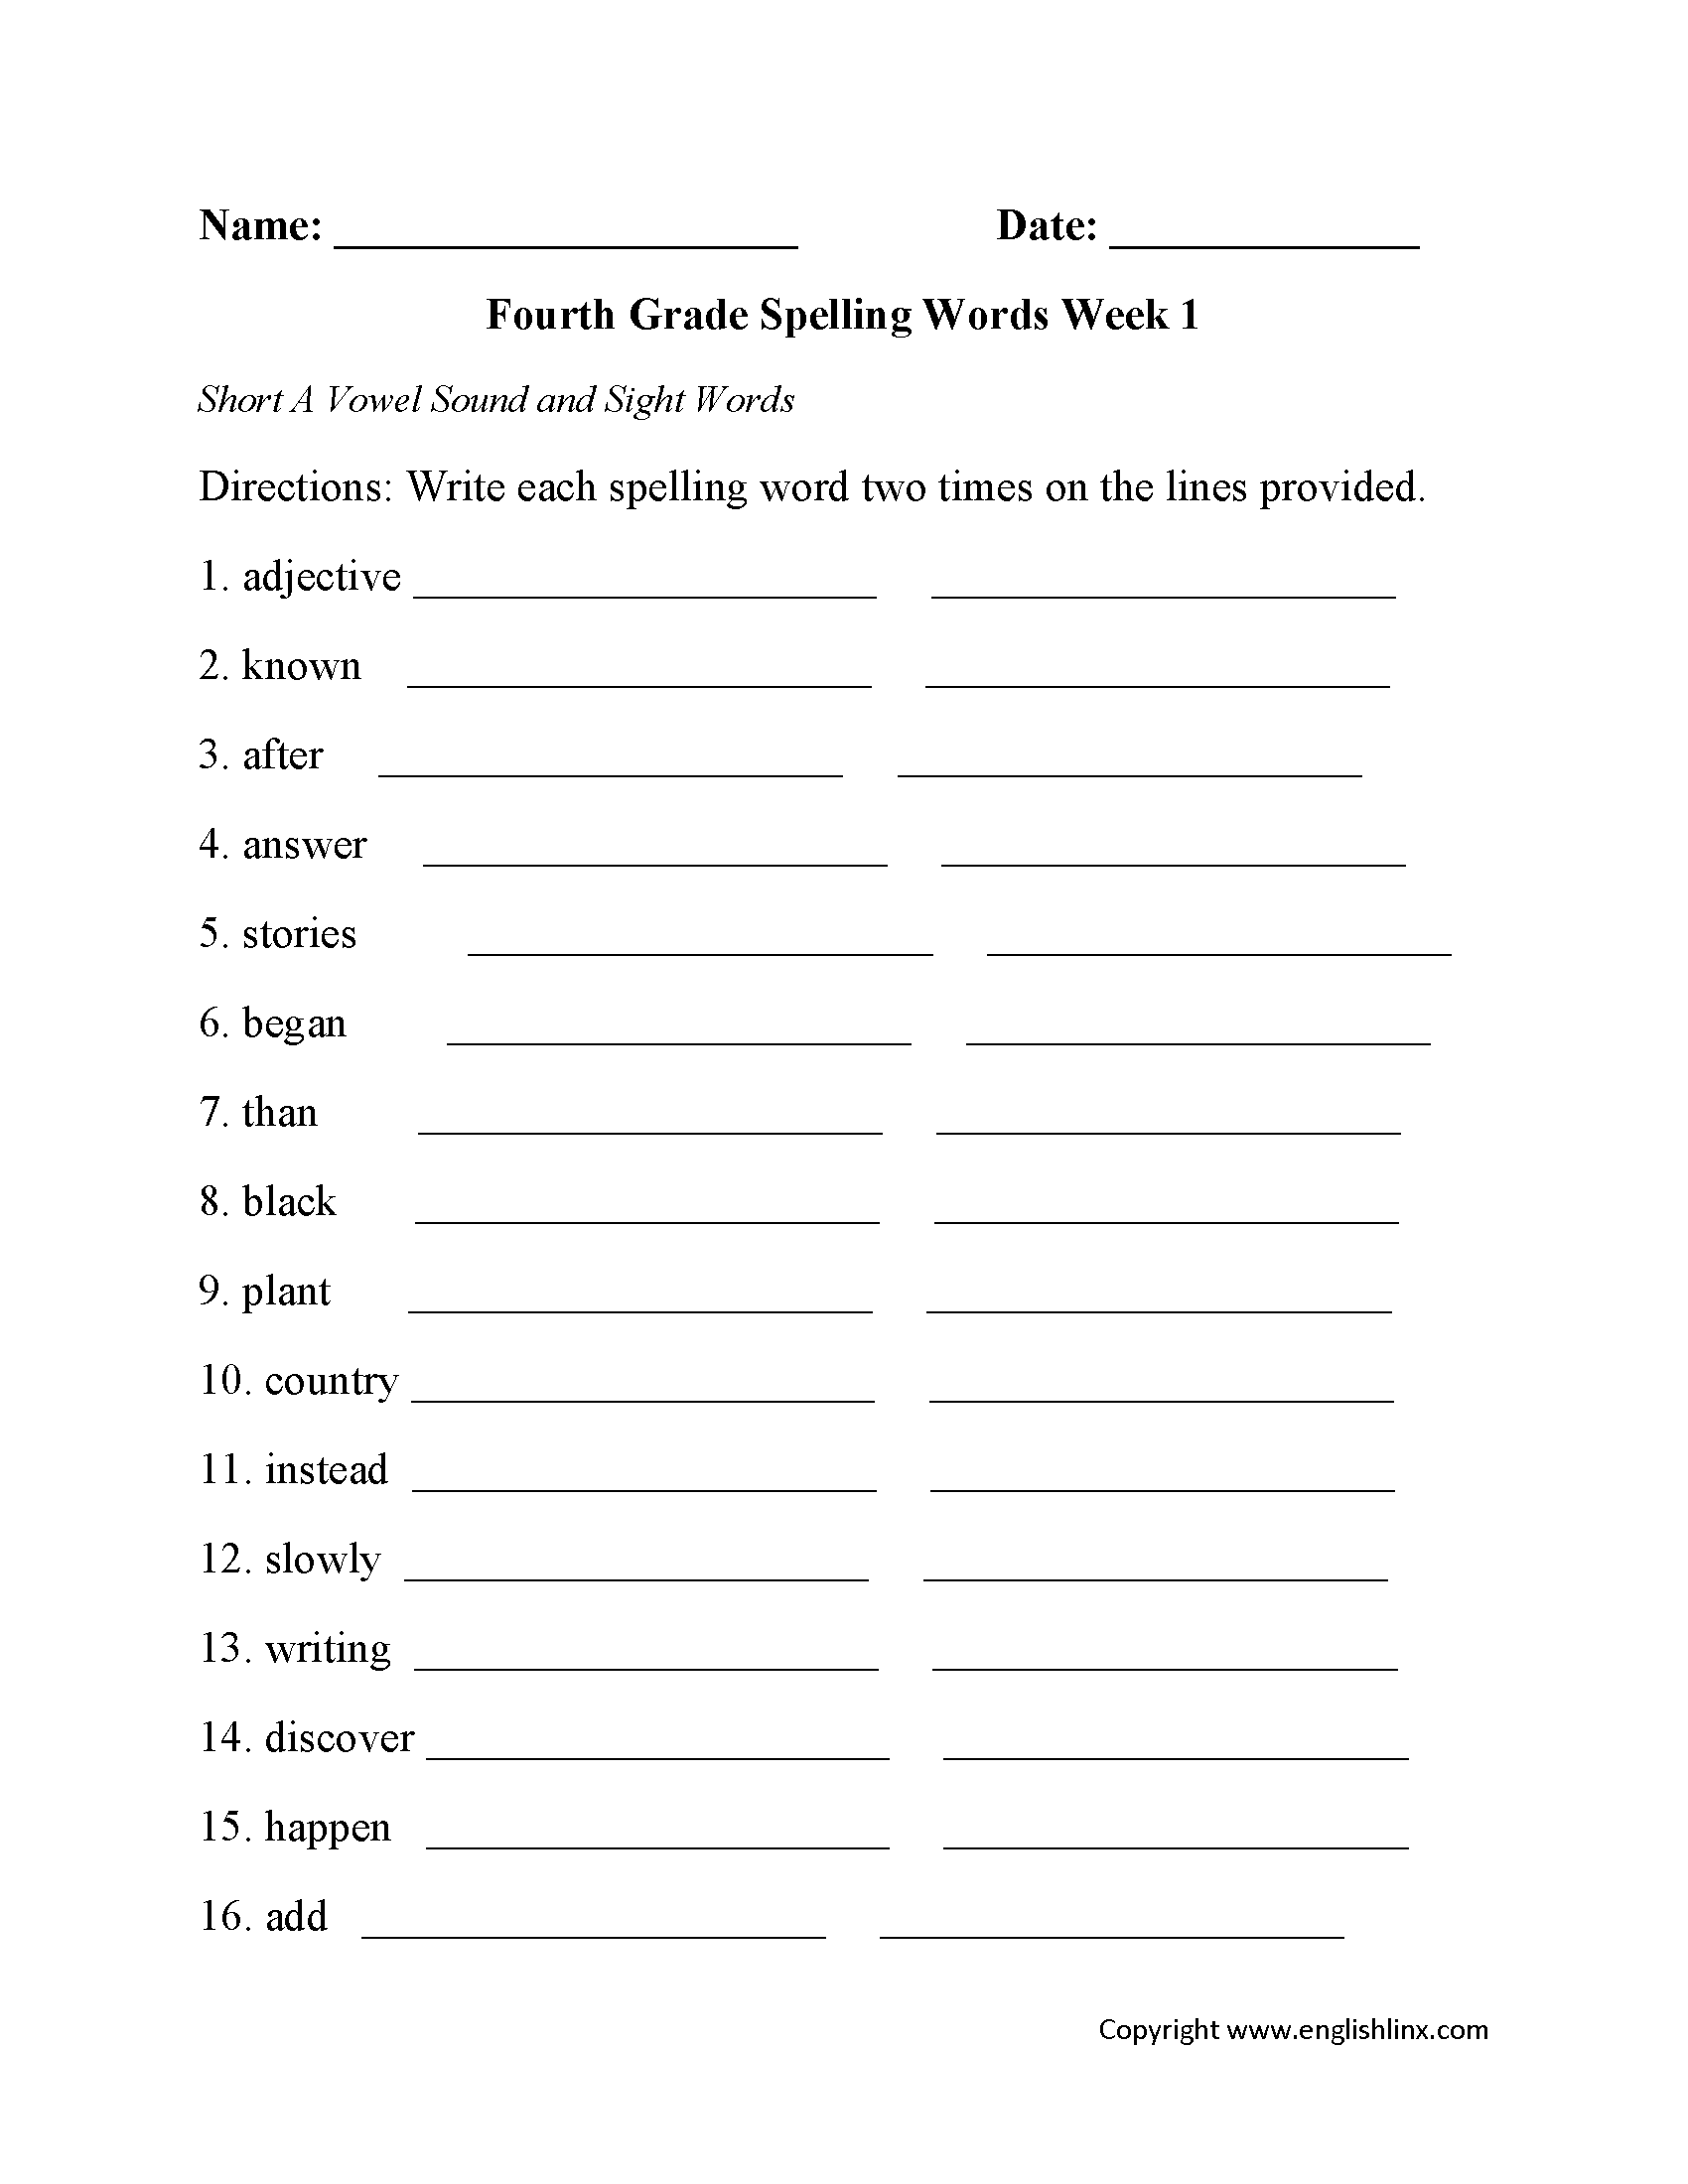 Free 4th Grade Spelling Worksheets The Best Worksheets Image